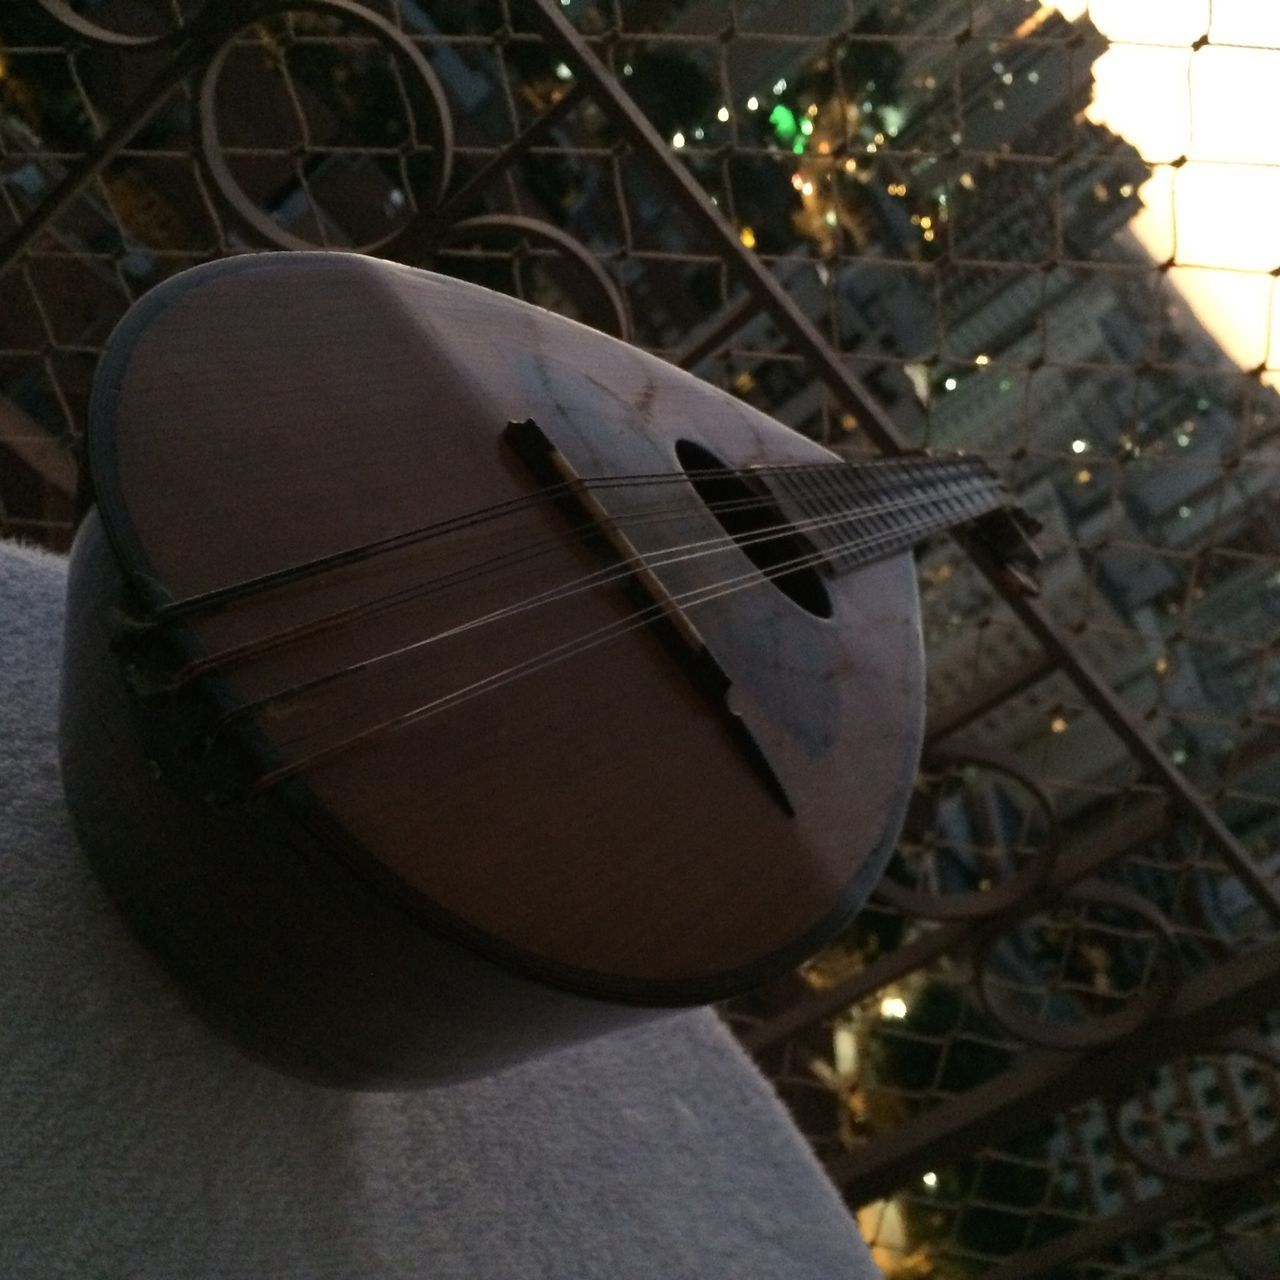 music, musical instrument, indoors, musical instrument string, no people, arts culture and entertainment, guitar, close-up, day